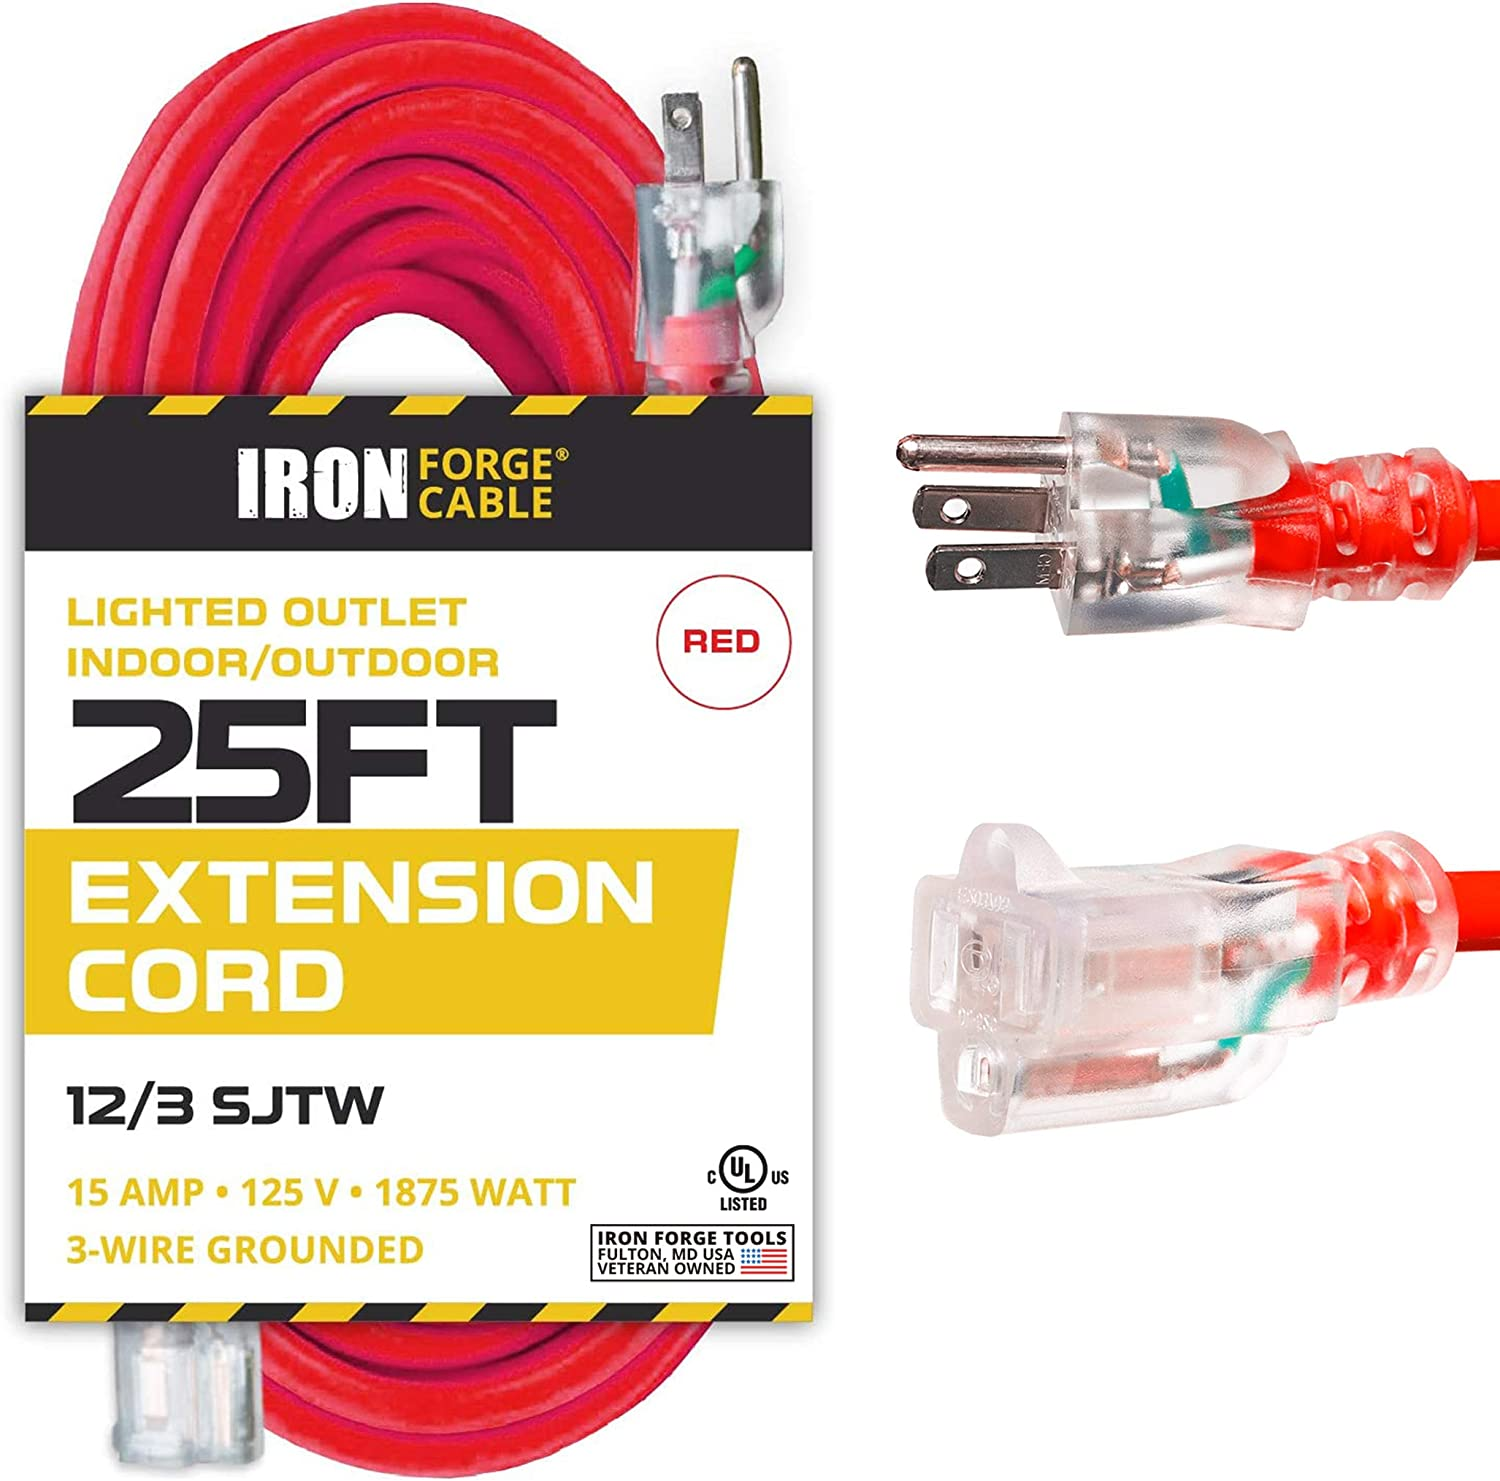 Iron Forge Cable 25 Ft Lighted Extension Cord - 12/3 SJTW Heavy Duty Red Outdoor Extension Cable with 3 Prong Grounded Plug for Safety - Great for Garden & Major Appliances